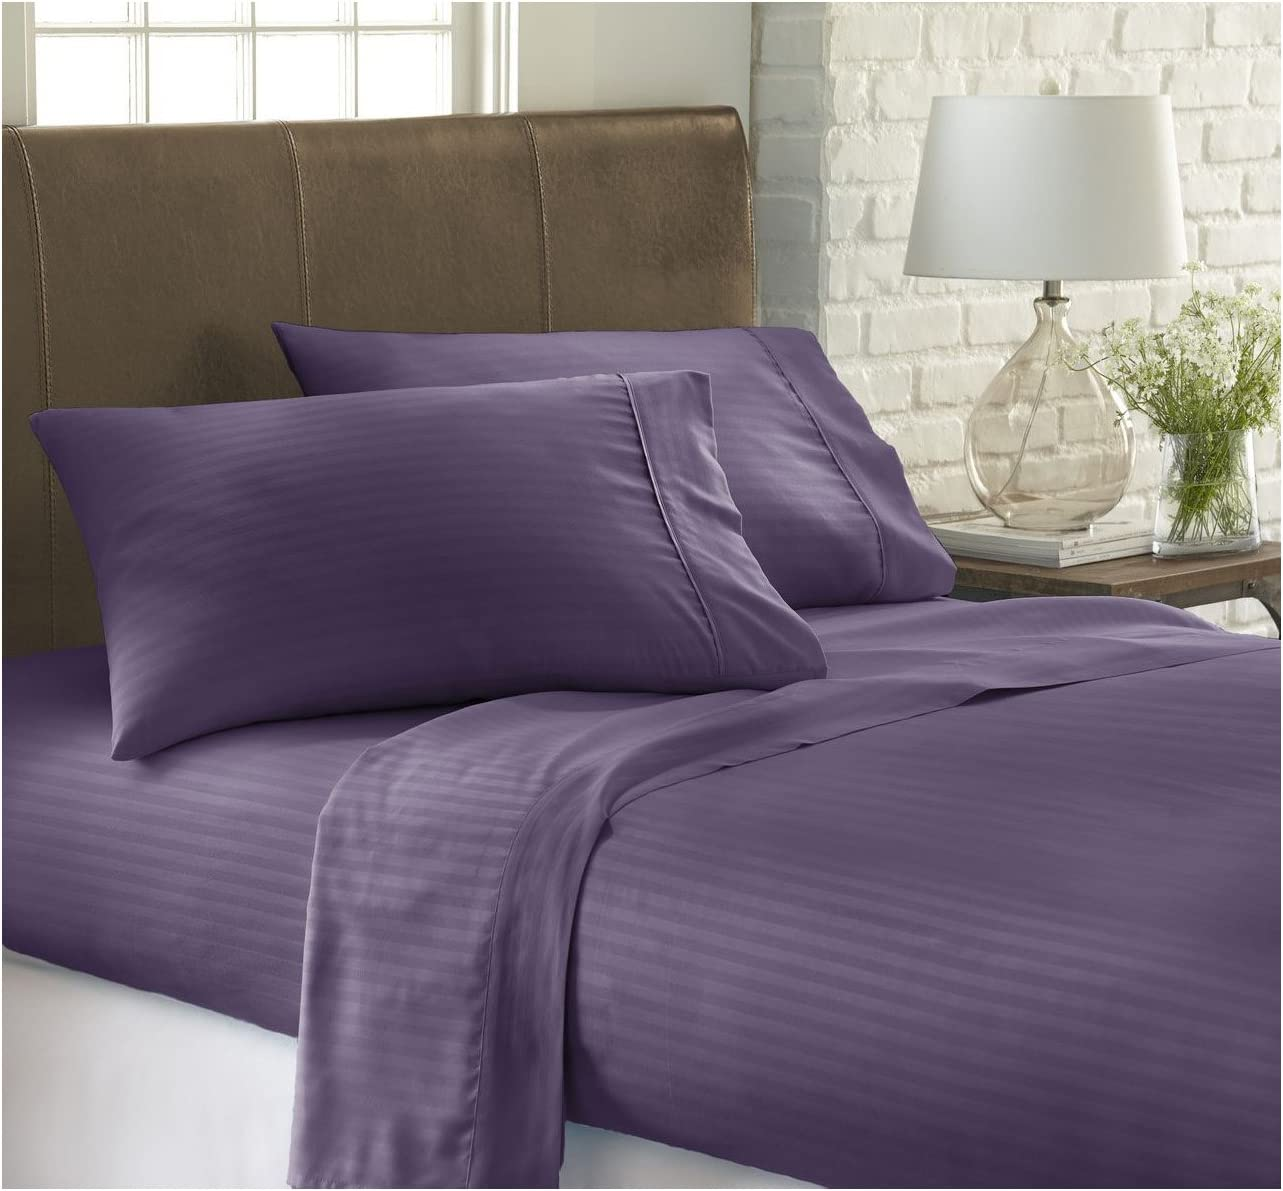 ienjoy Home Dobby 4 Piece Home Collection Premium Embossed Stripe Design Bed Sheet Set, California King, Purple